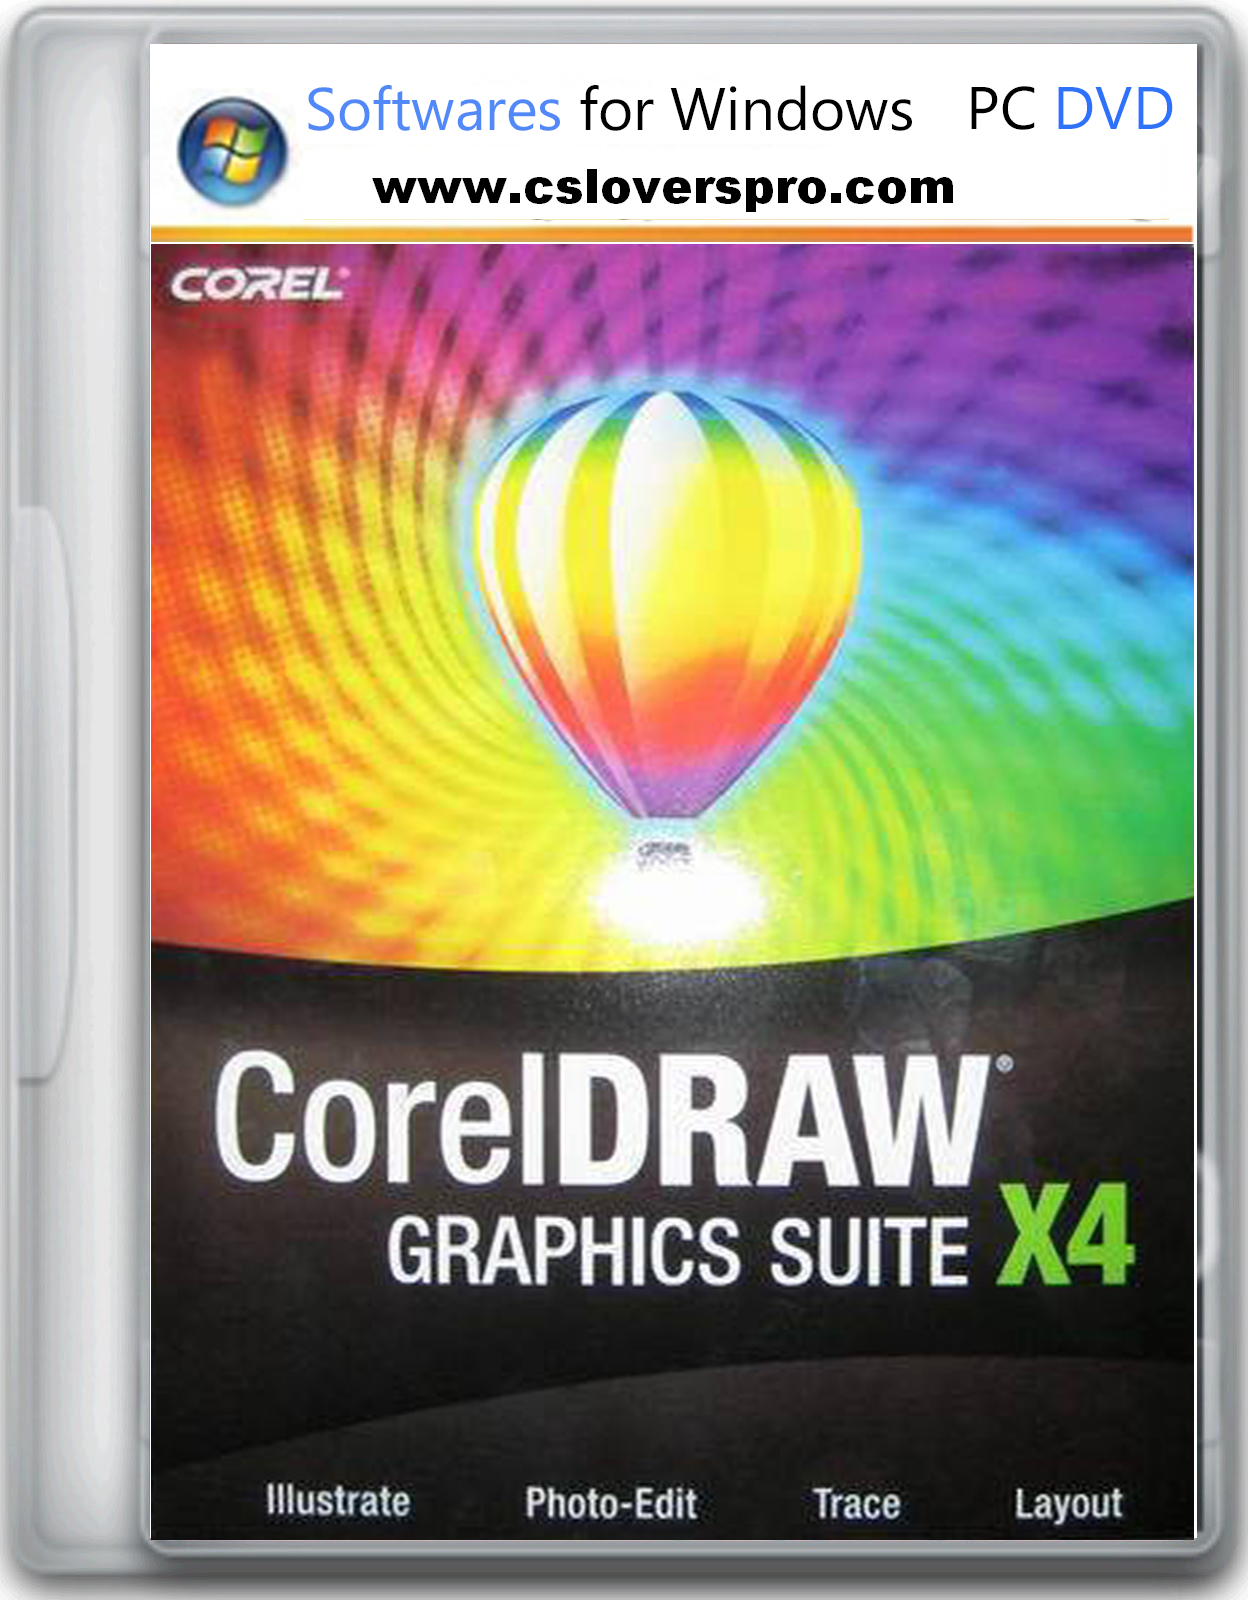 Corel draw version - Corel Draw Graphics Suite X4 14 0 0 Full Version Free Download Highly Compressed Fullypcgames Blogspot Com